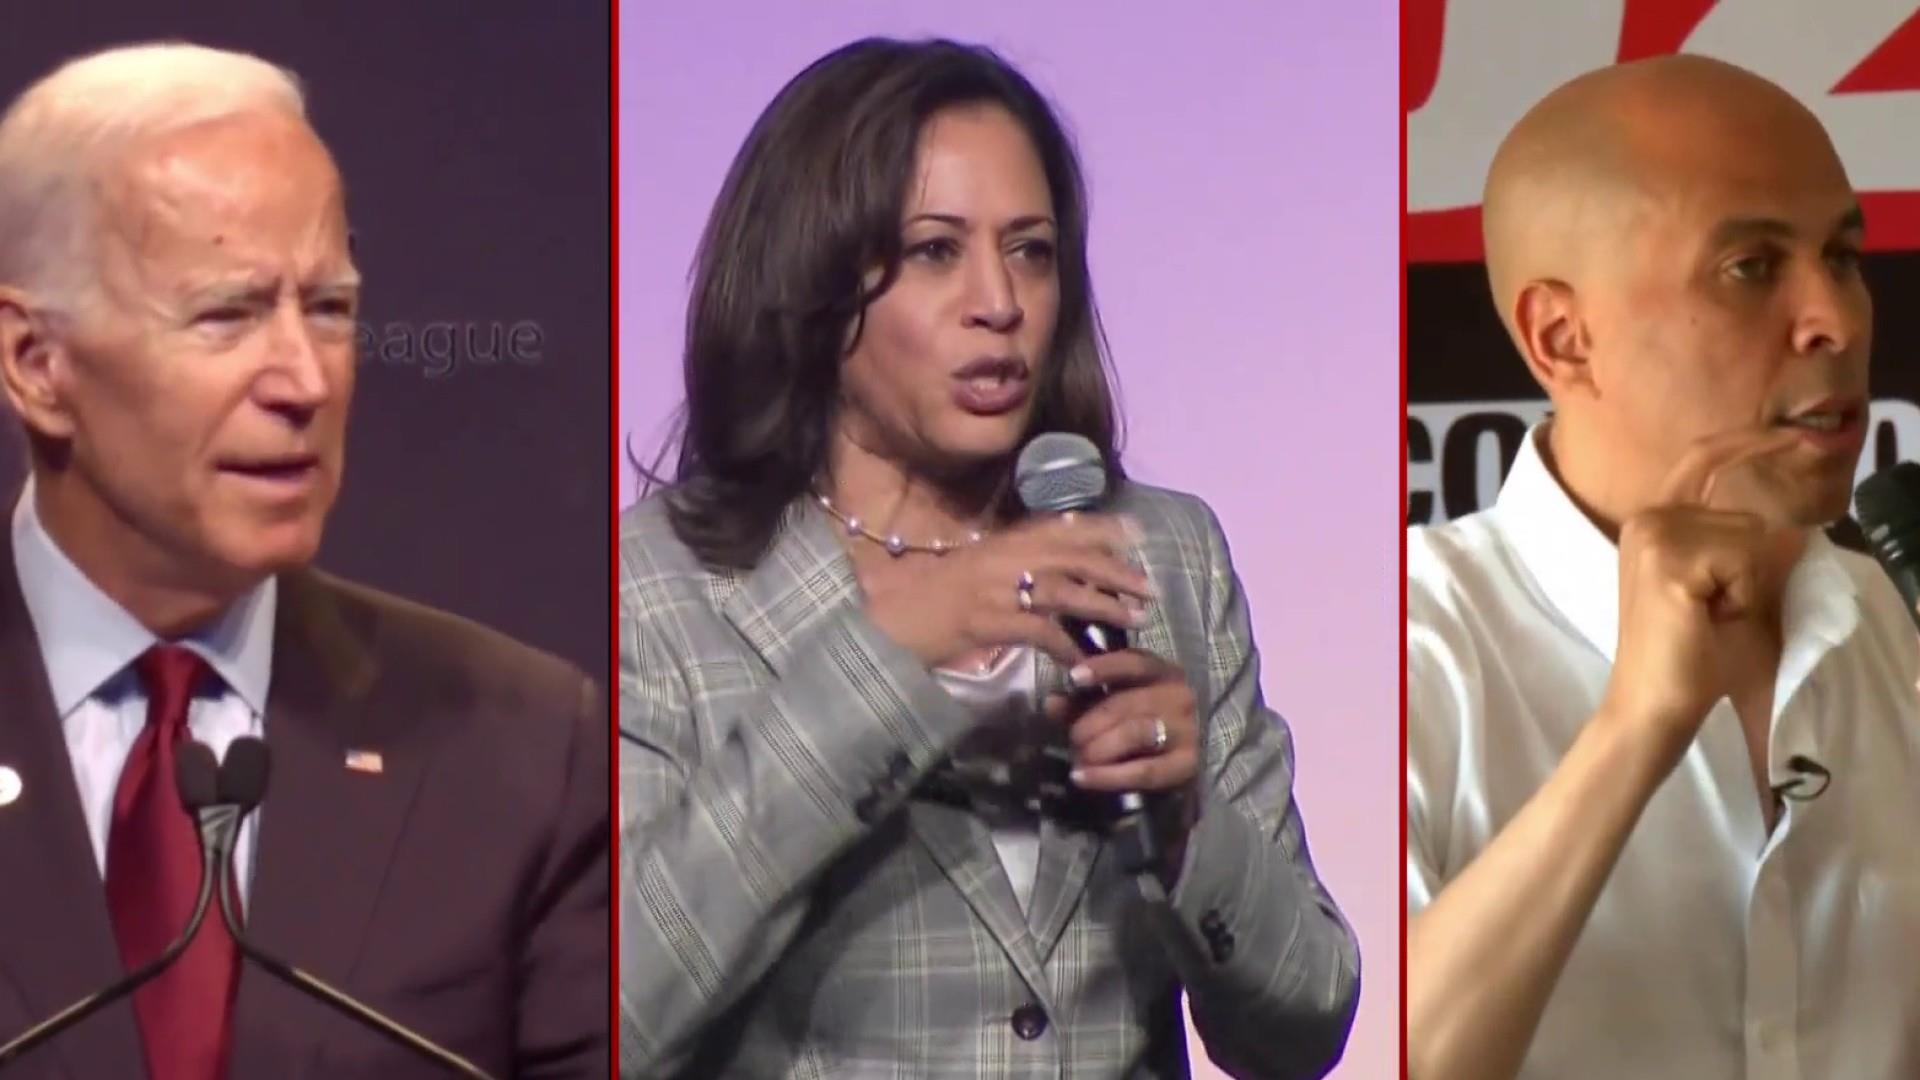 Joe Biden gets tough with Harris and Booker on criminal justice